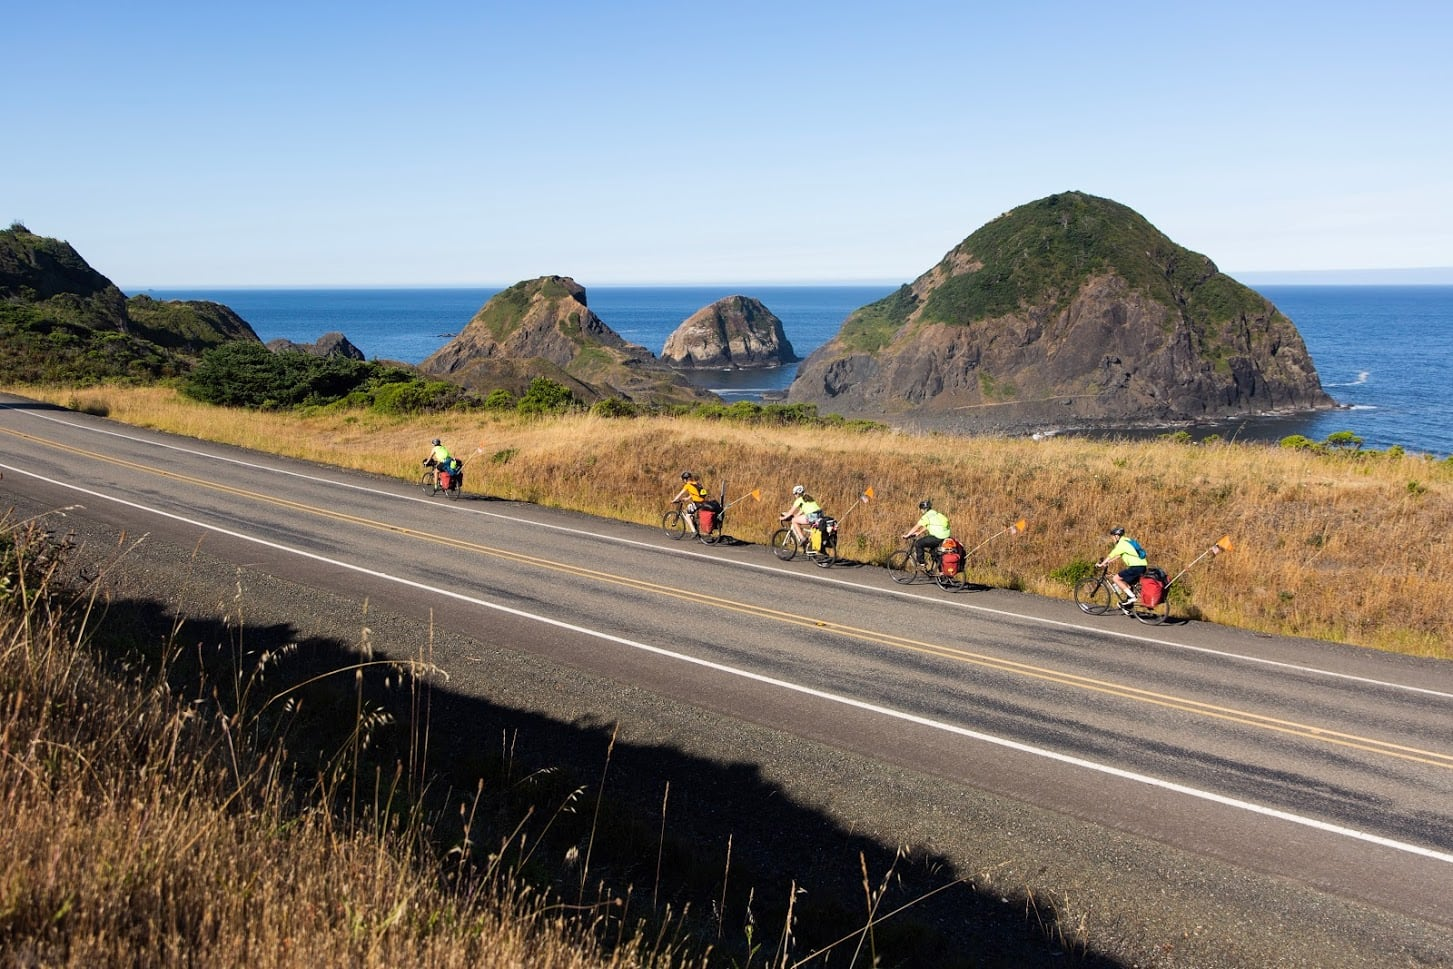 A stunning view of the Pacific coast in the background of a teen summer biking trip